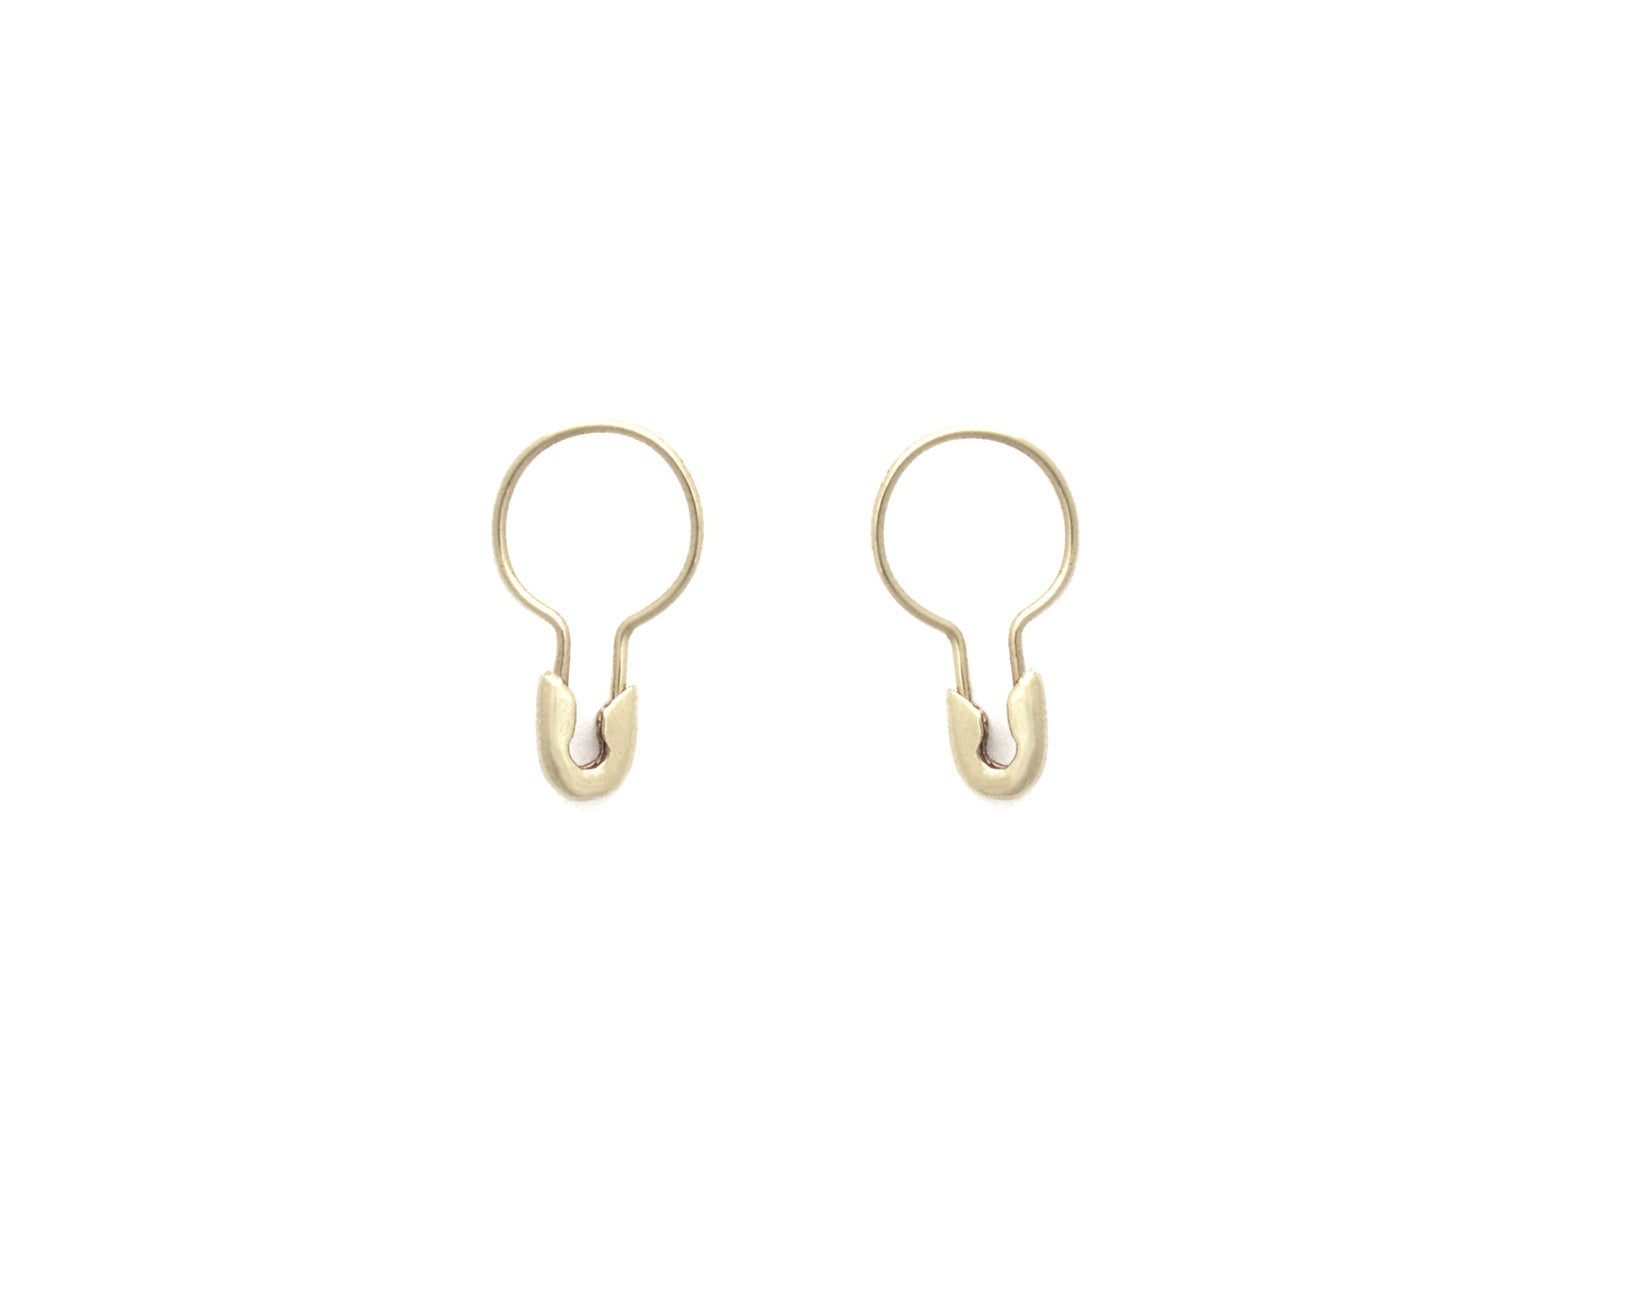 14k Gold Small Safety Pin Hoop Earring